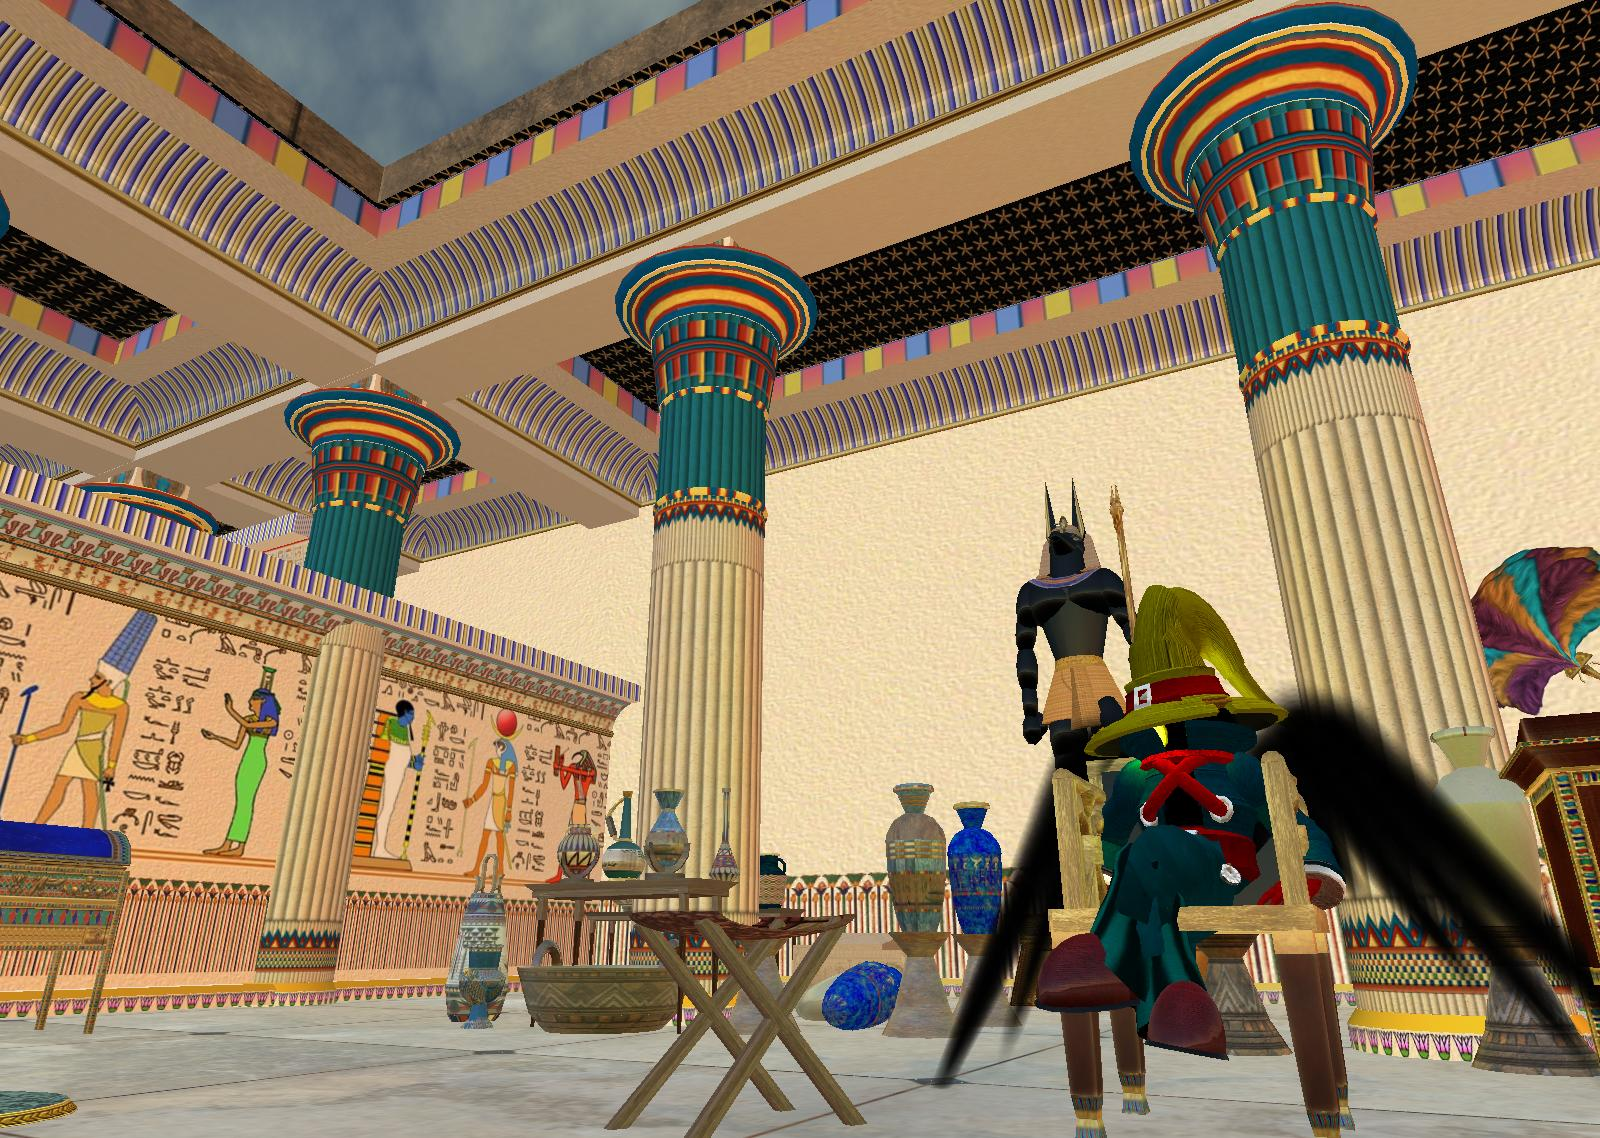 Lily breathes life into the architecture and culture of ancient egypt